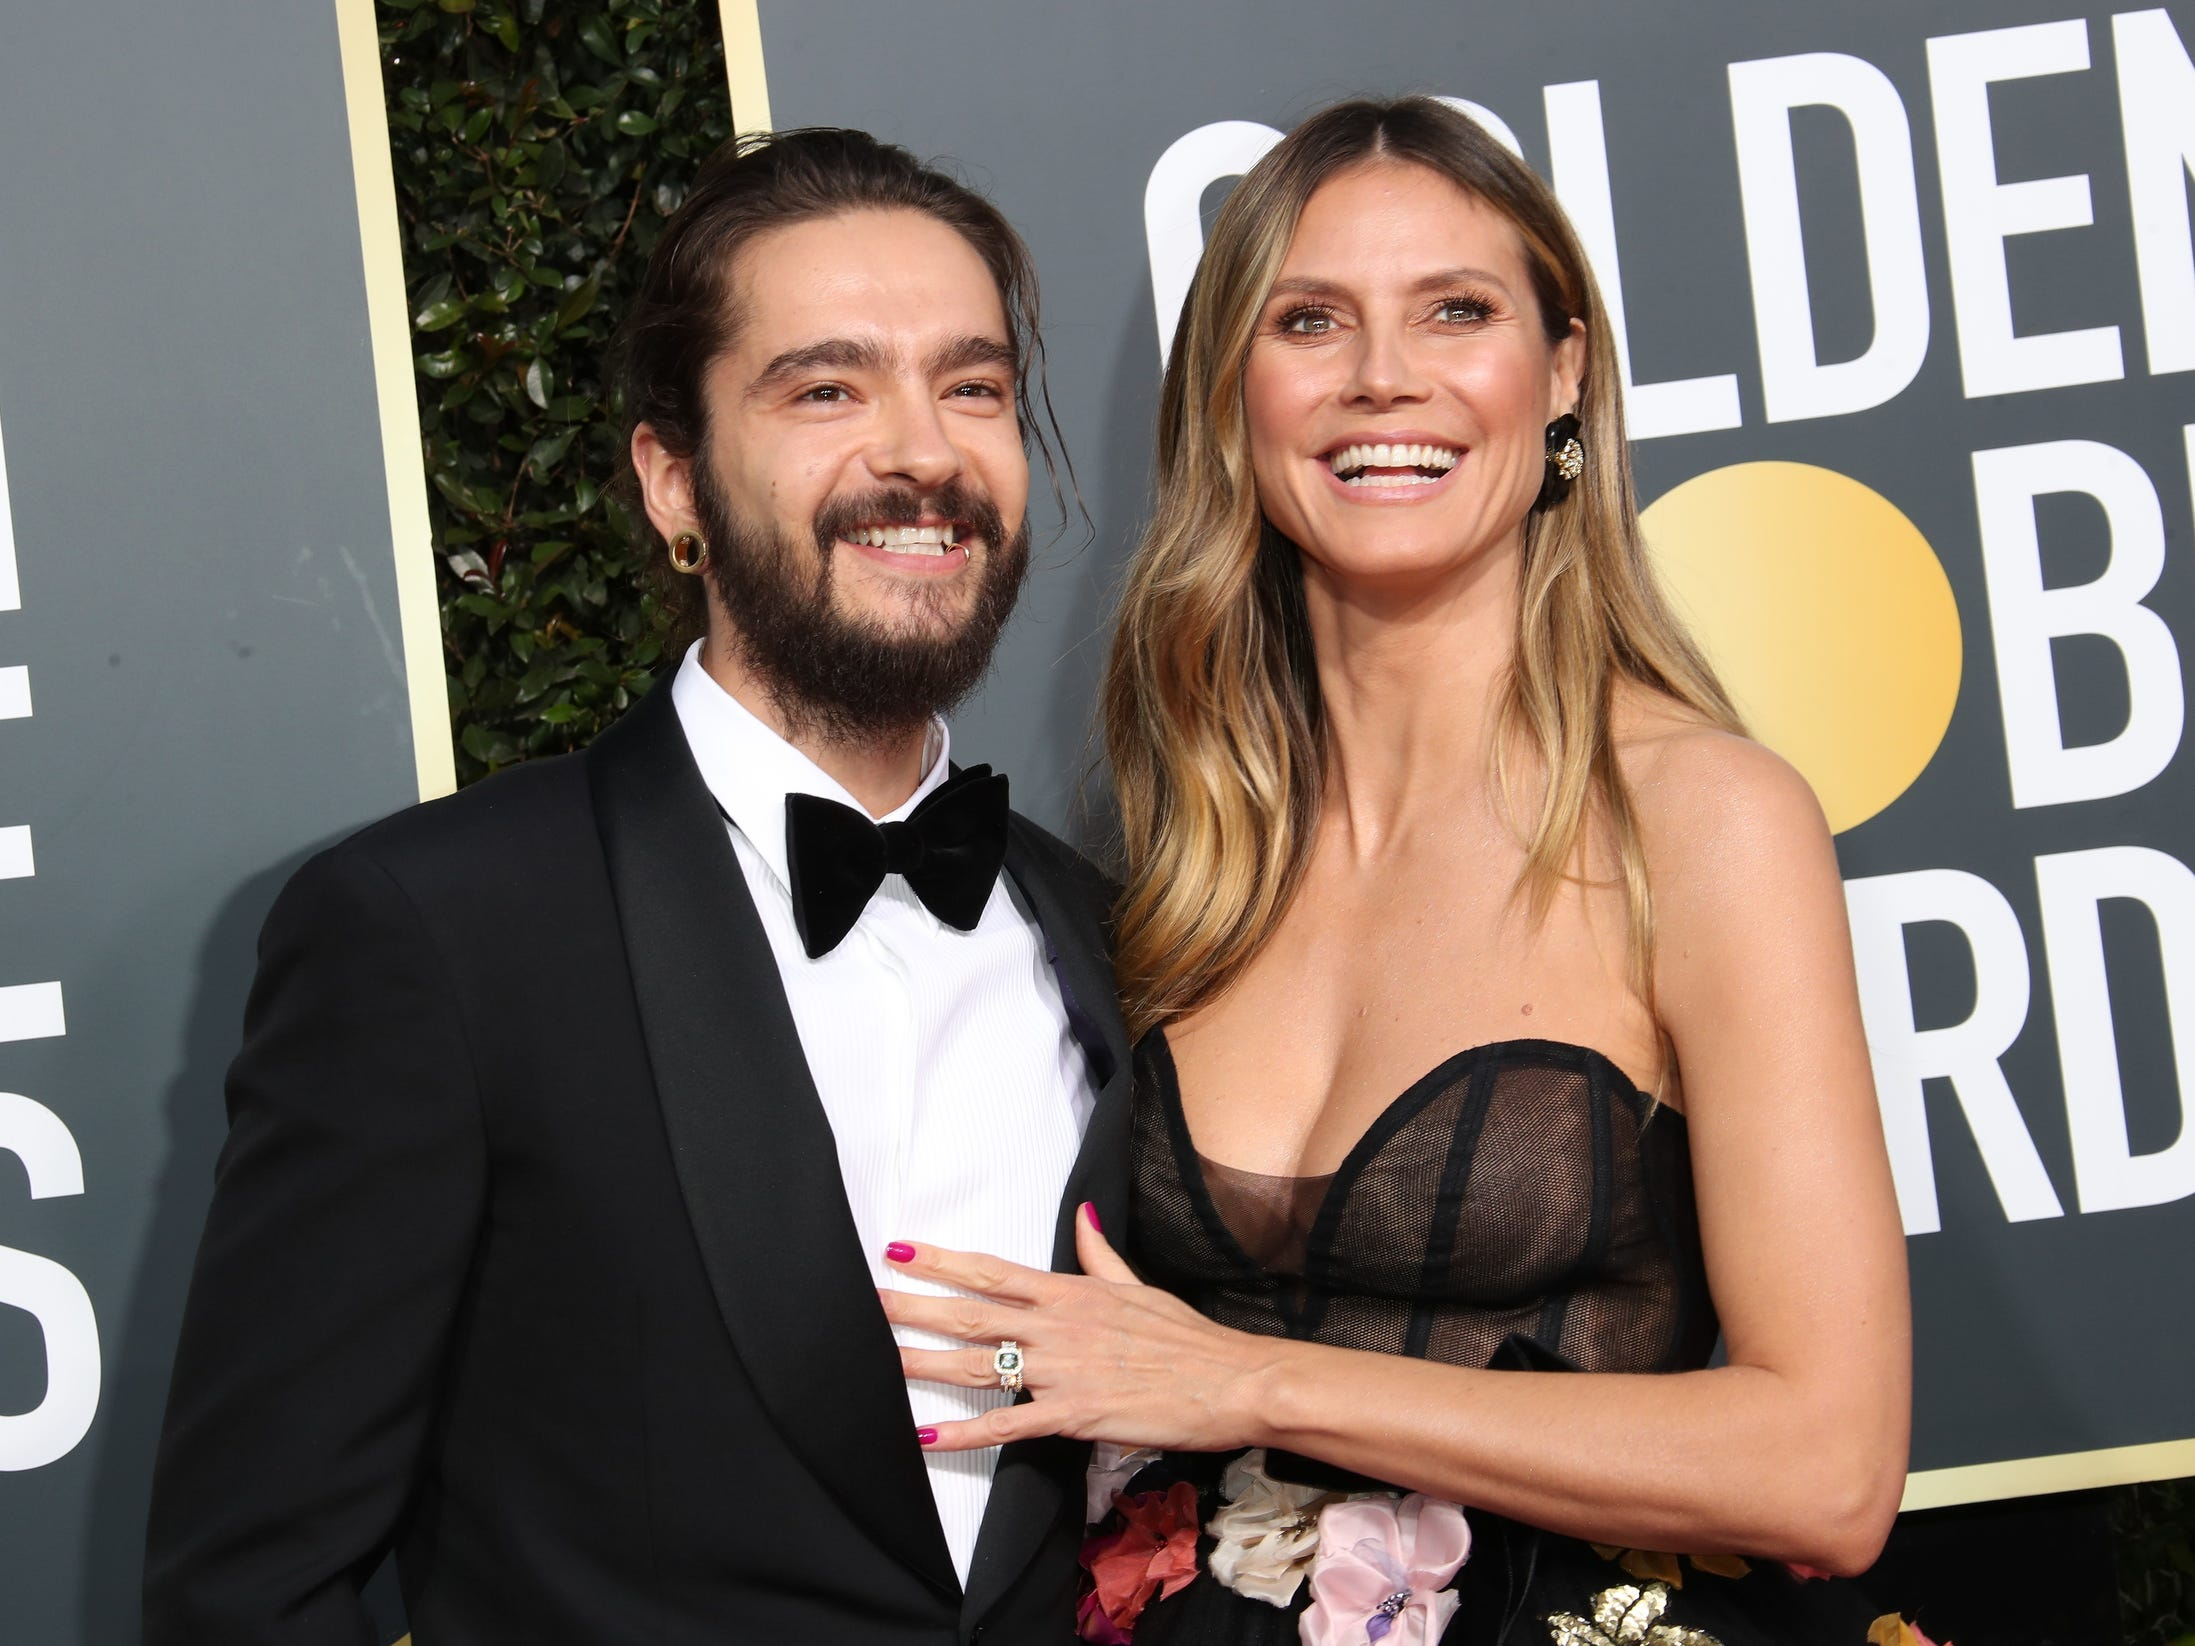 Tom Kaulitz and Heidi Klum arrive.